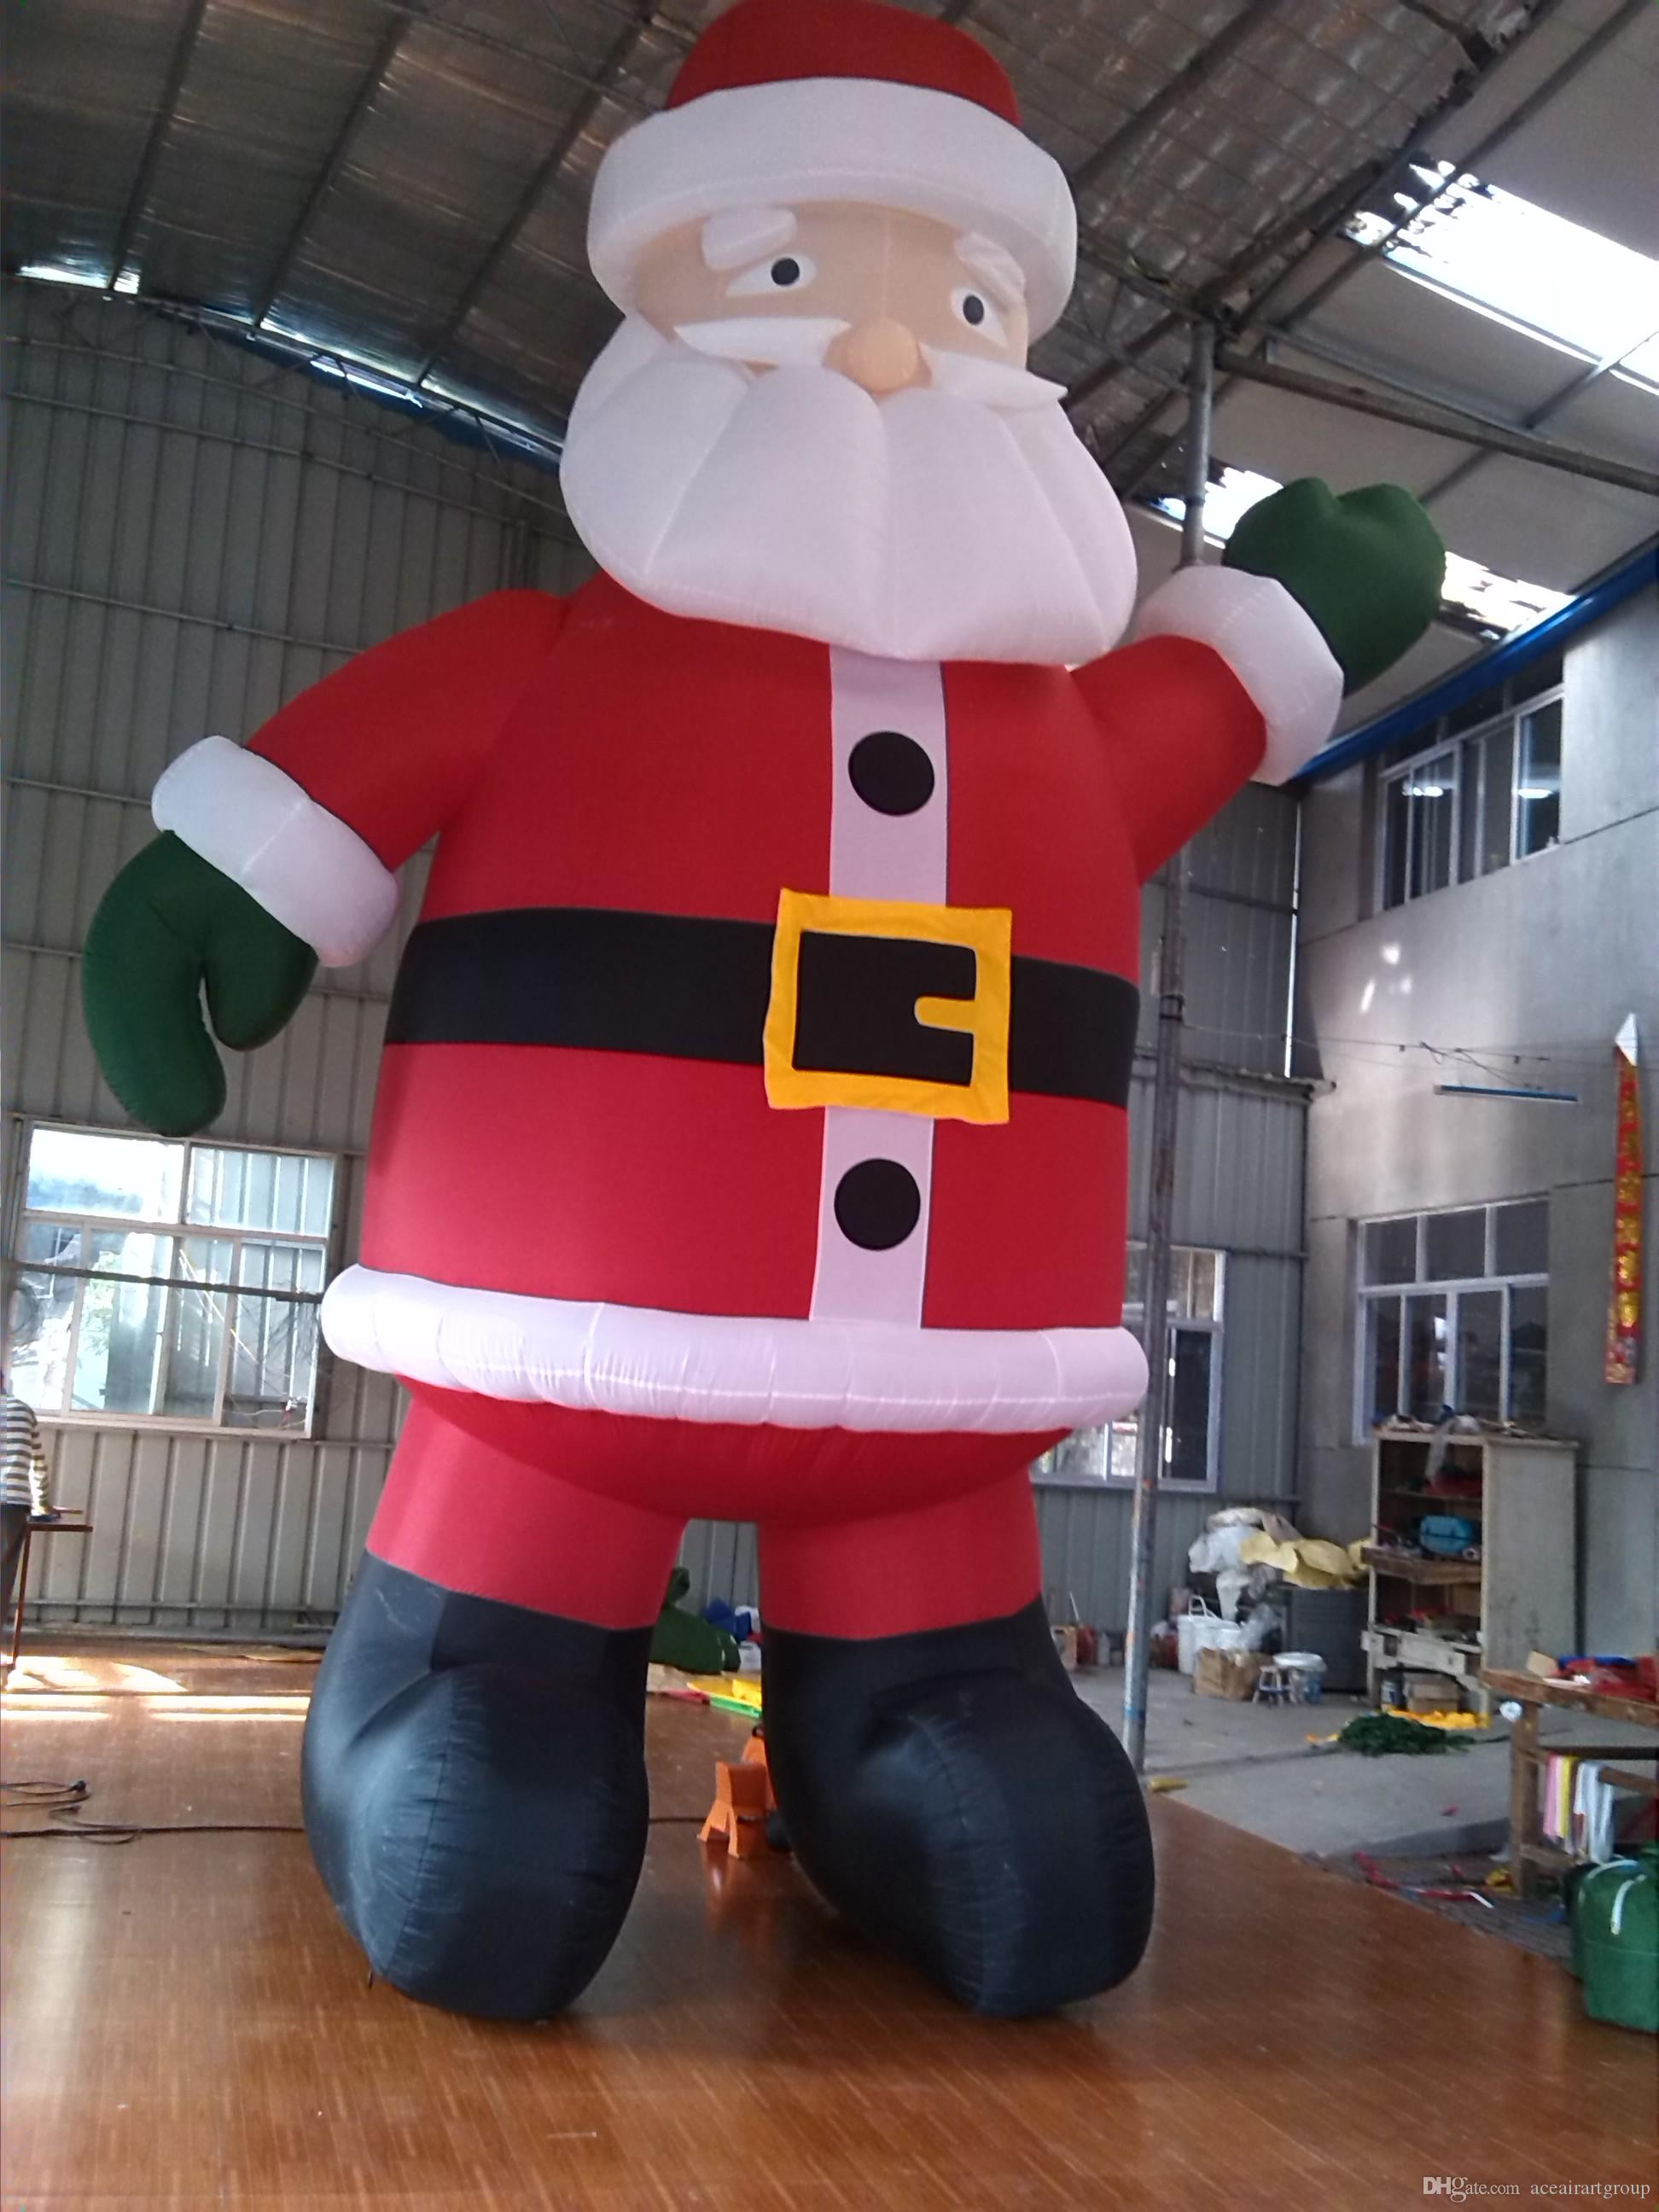 2018 giant 6mh inflatable celebration decoration inflatable santa claus for advertising with fee air blower from aceairartgroup 43217 dhgatecom